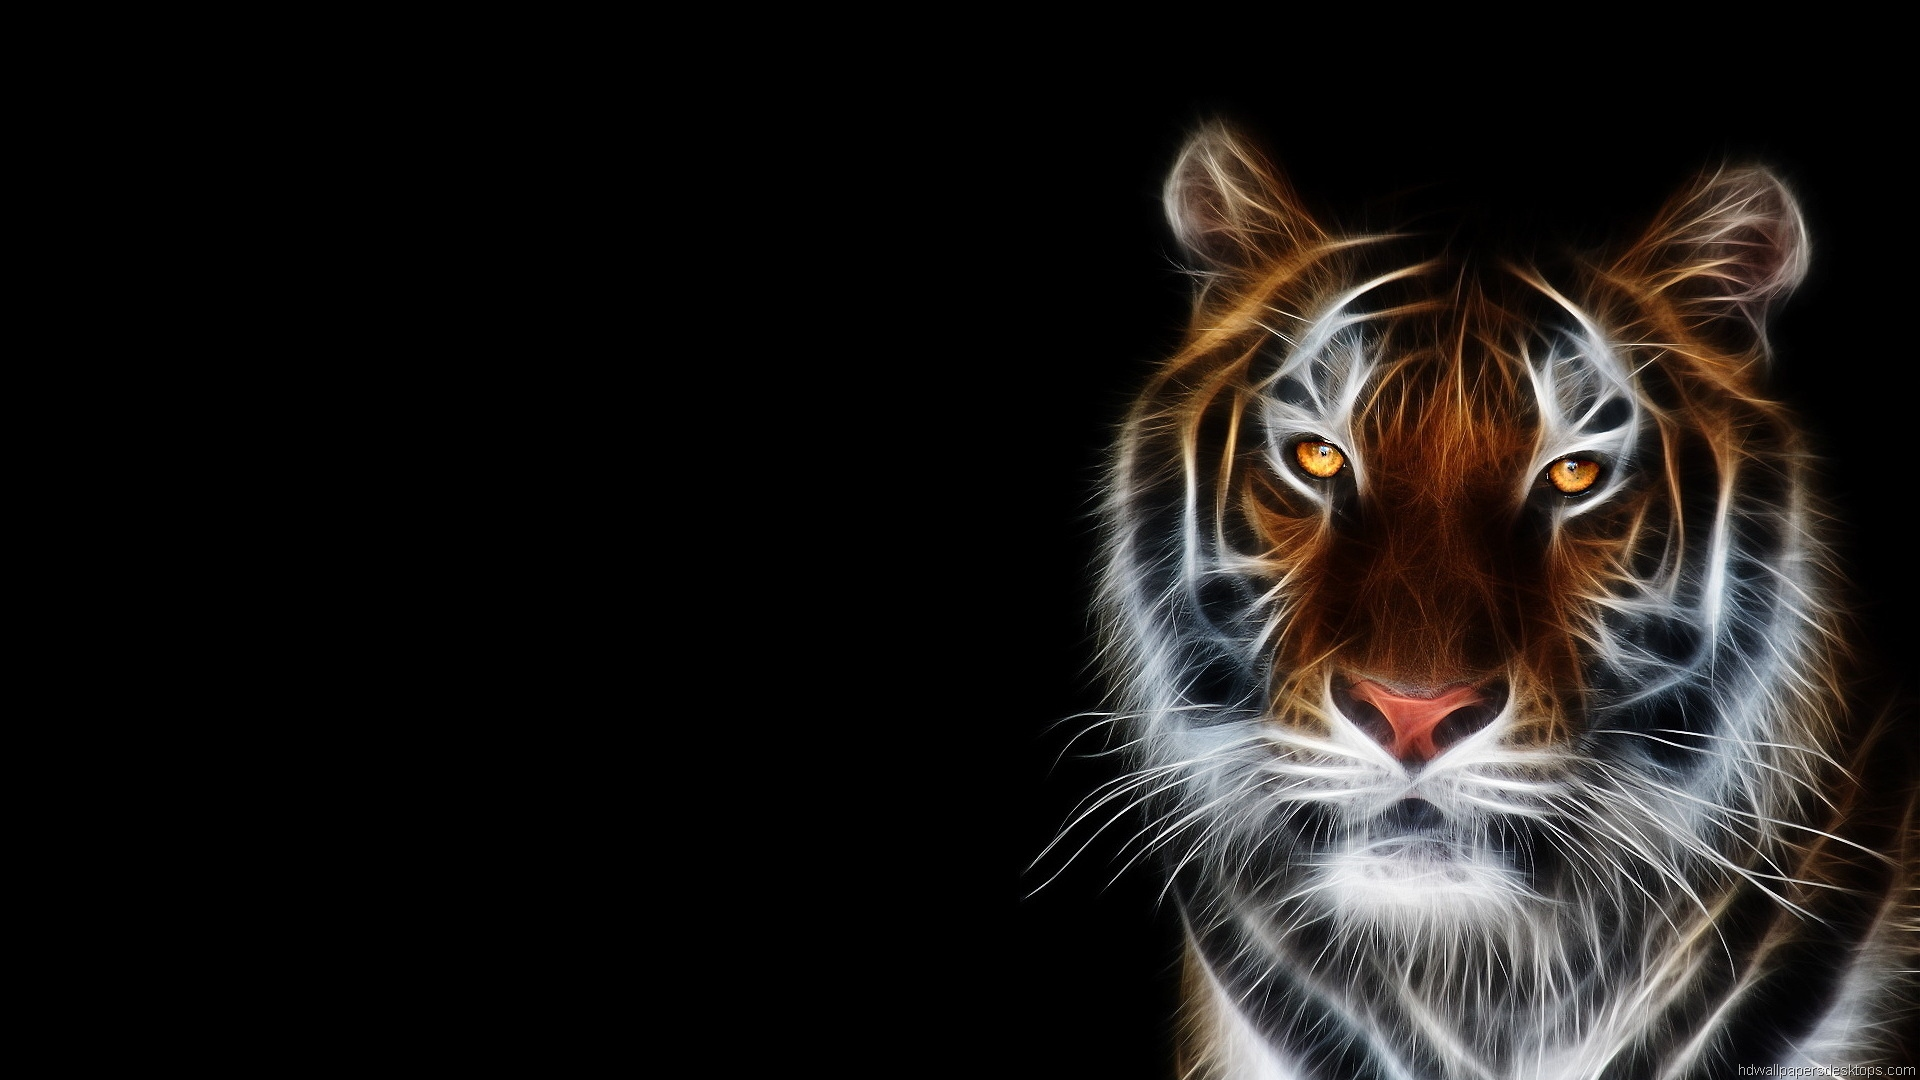 Like or share Animals Wallpapers Hd Widescreen Desktop Backgrounds 1920x1080